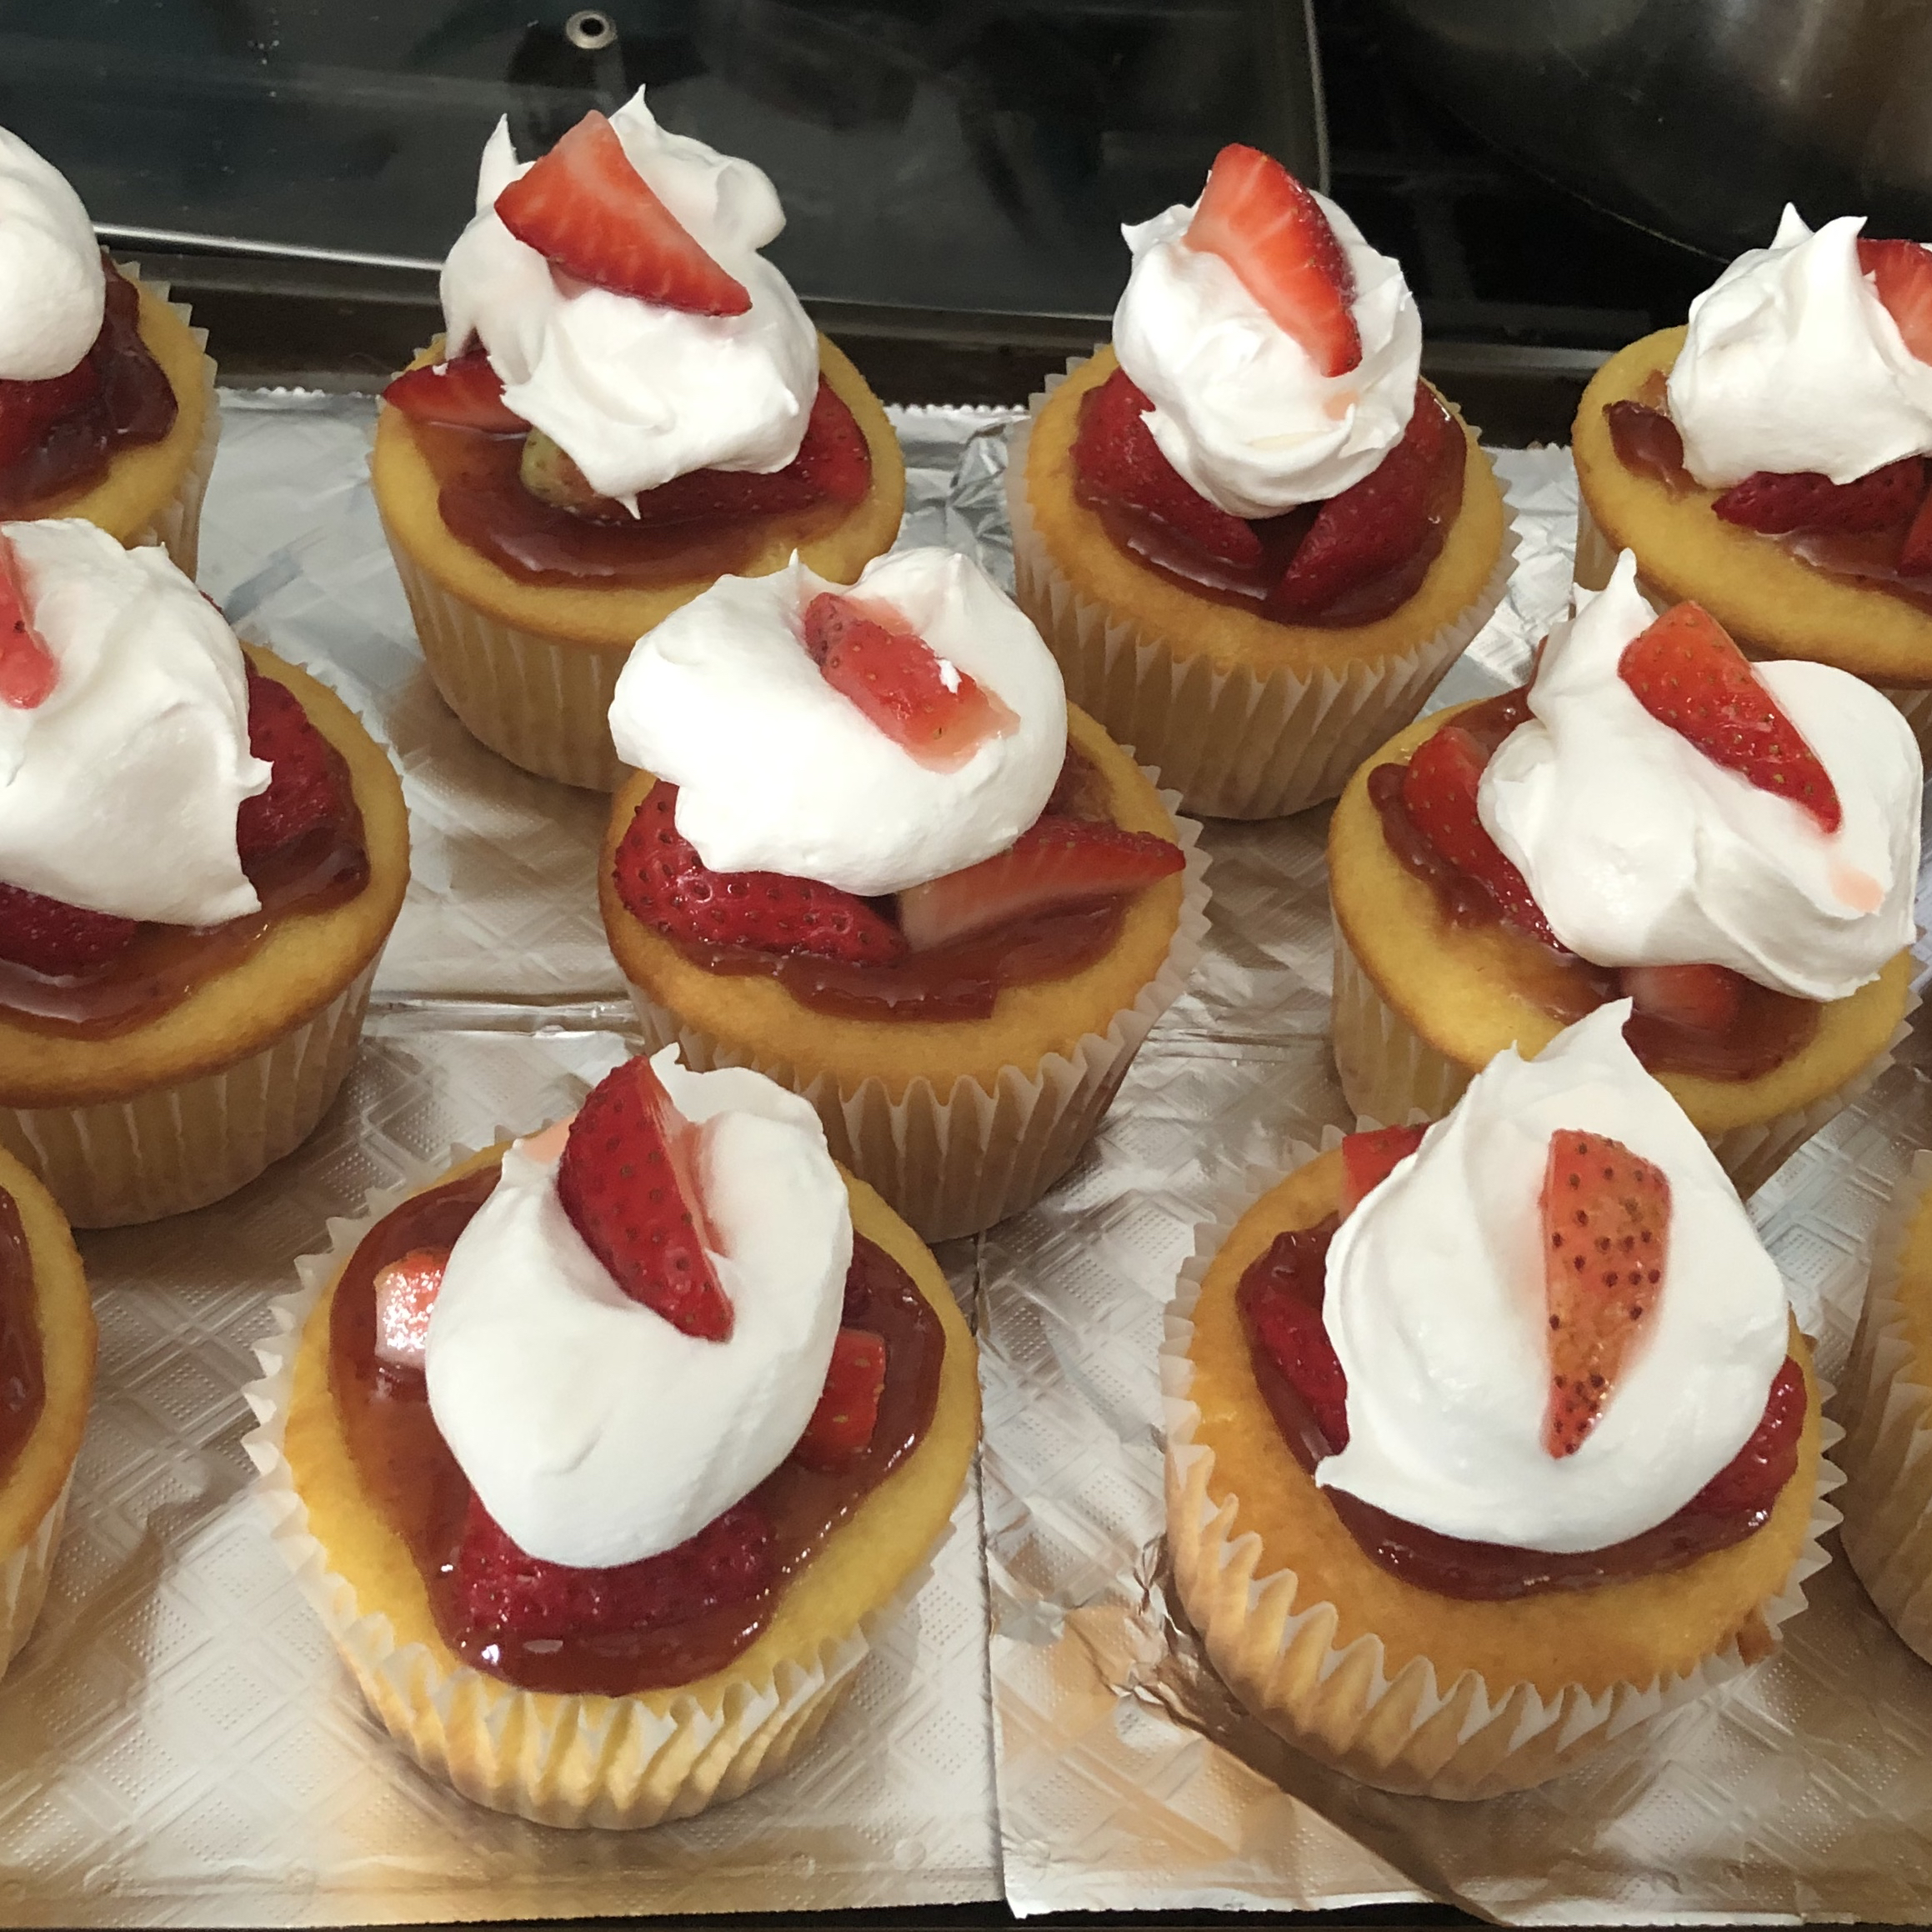 Strawberry Shortcake Cupcakes Bobbe Llamas